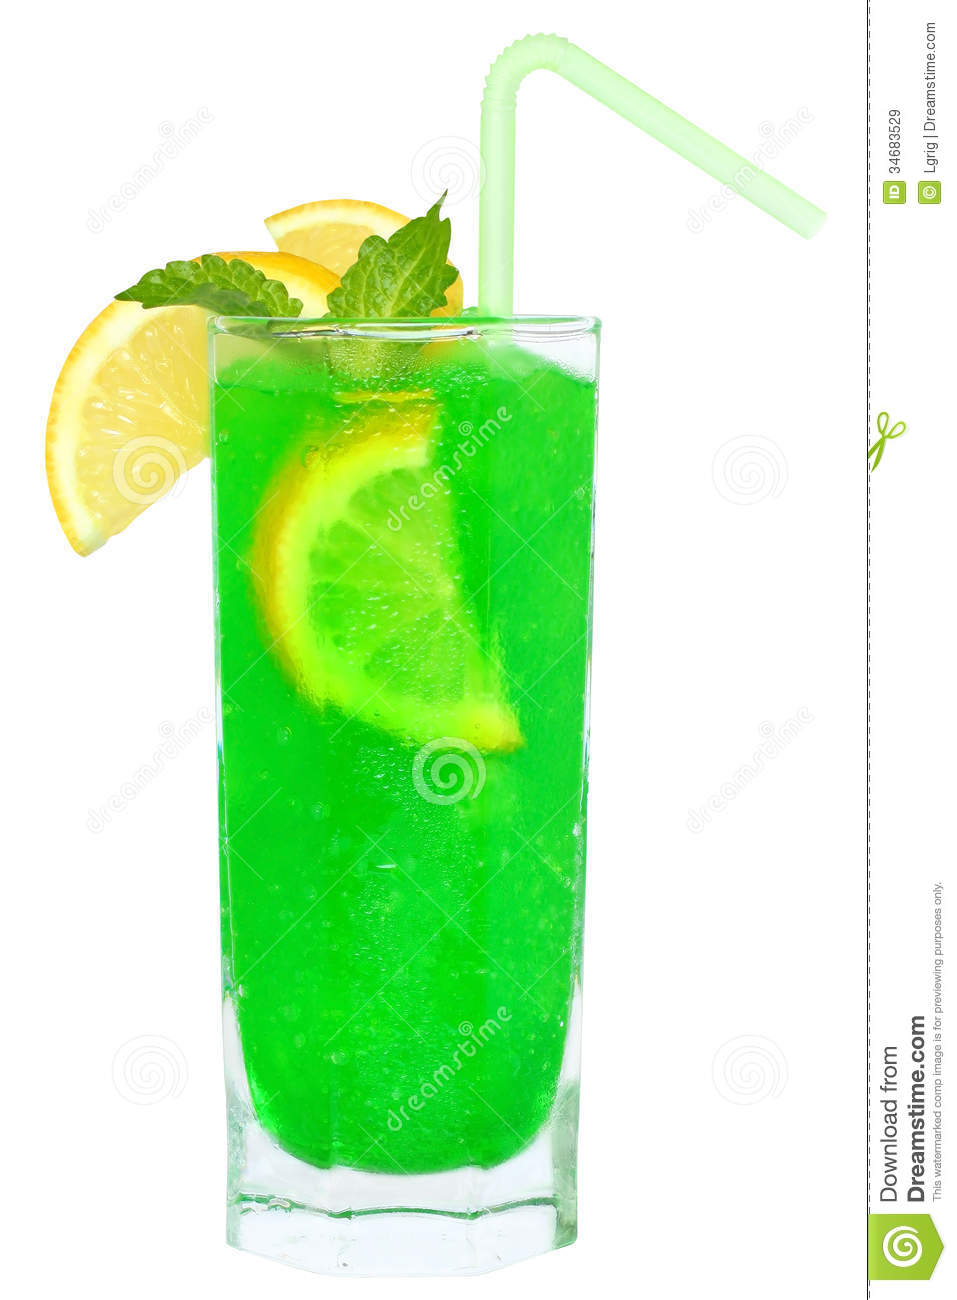 Green cocktail with crushed ice royalty free stock images for Mixed drinks with green tea